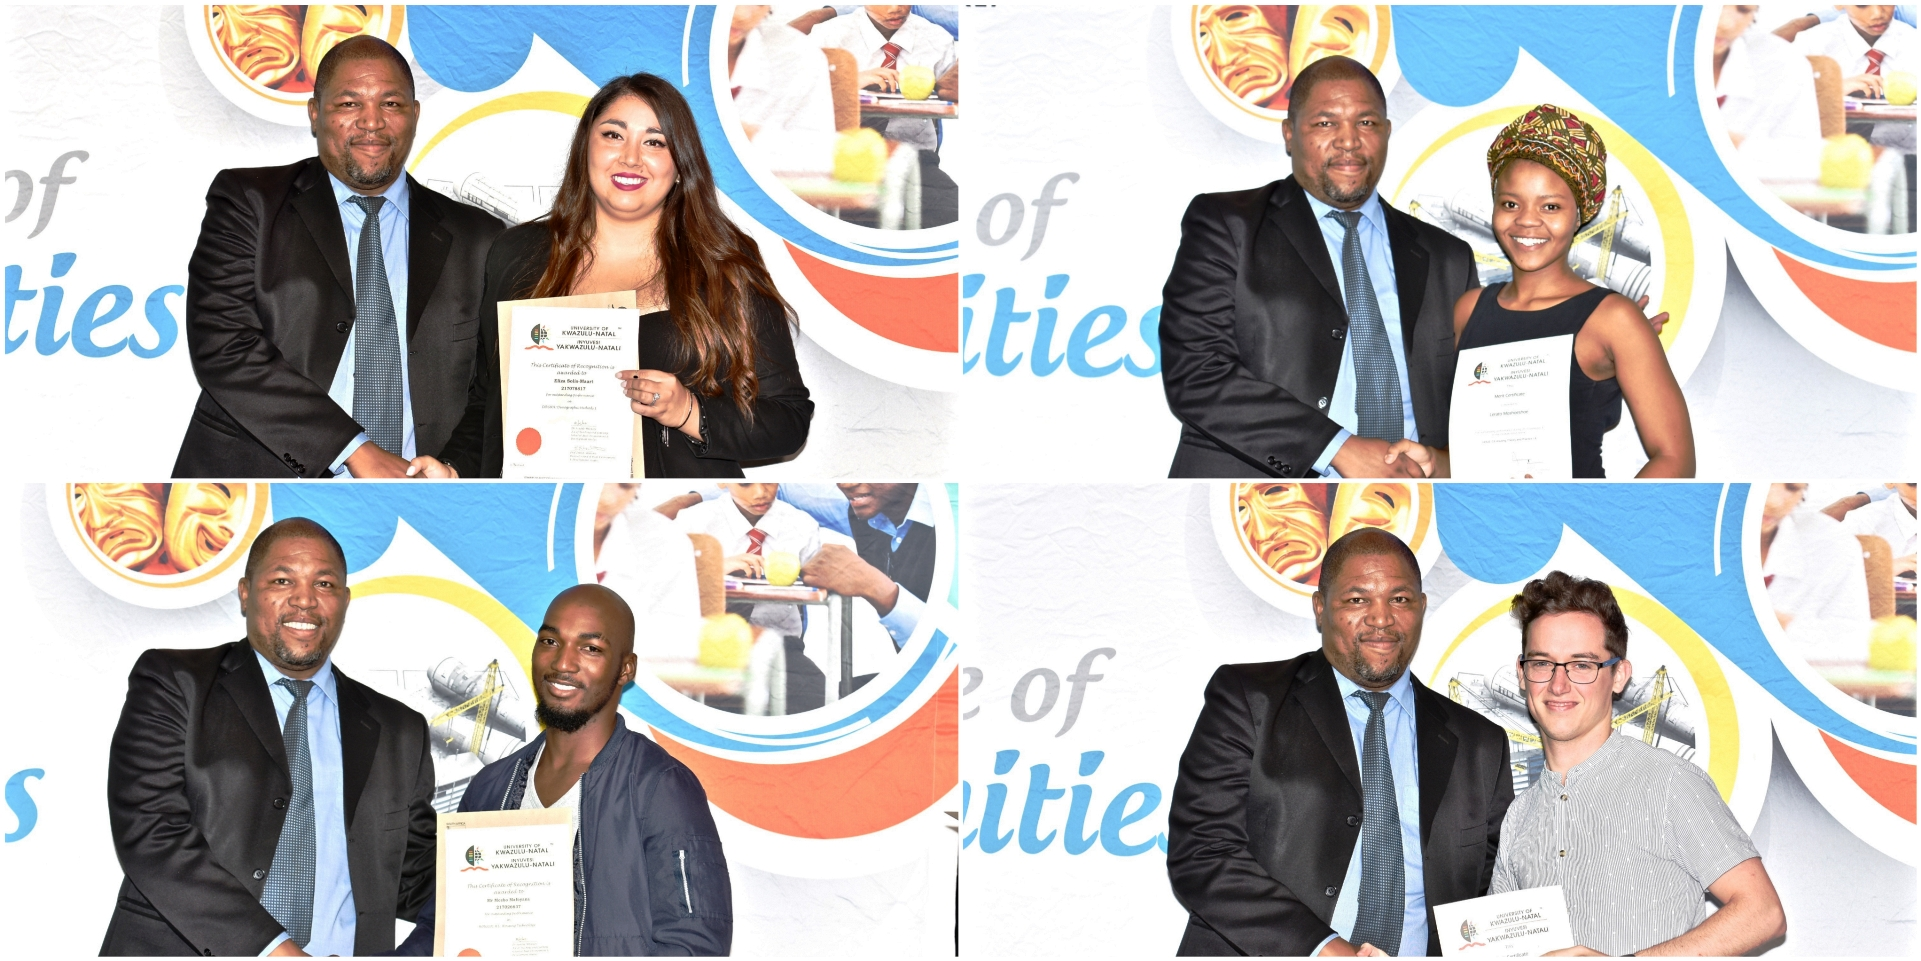 High achievers from the School of Built Environment & Development Studies. Clockwise from left: Ms Eliza Solis-Maart, Ms Lerato Moshoeshoe, Mr Mcebo Mafoyana and Mr Daniel Daruty De Grandpre